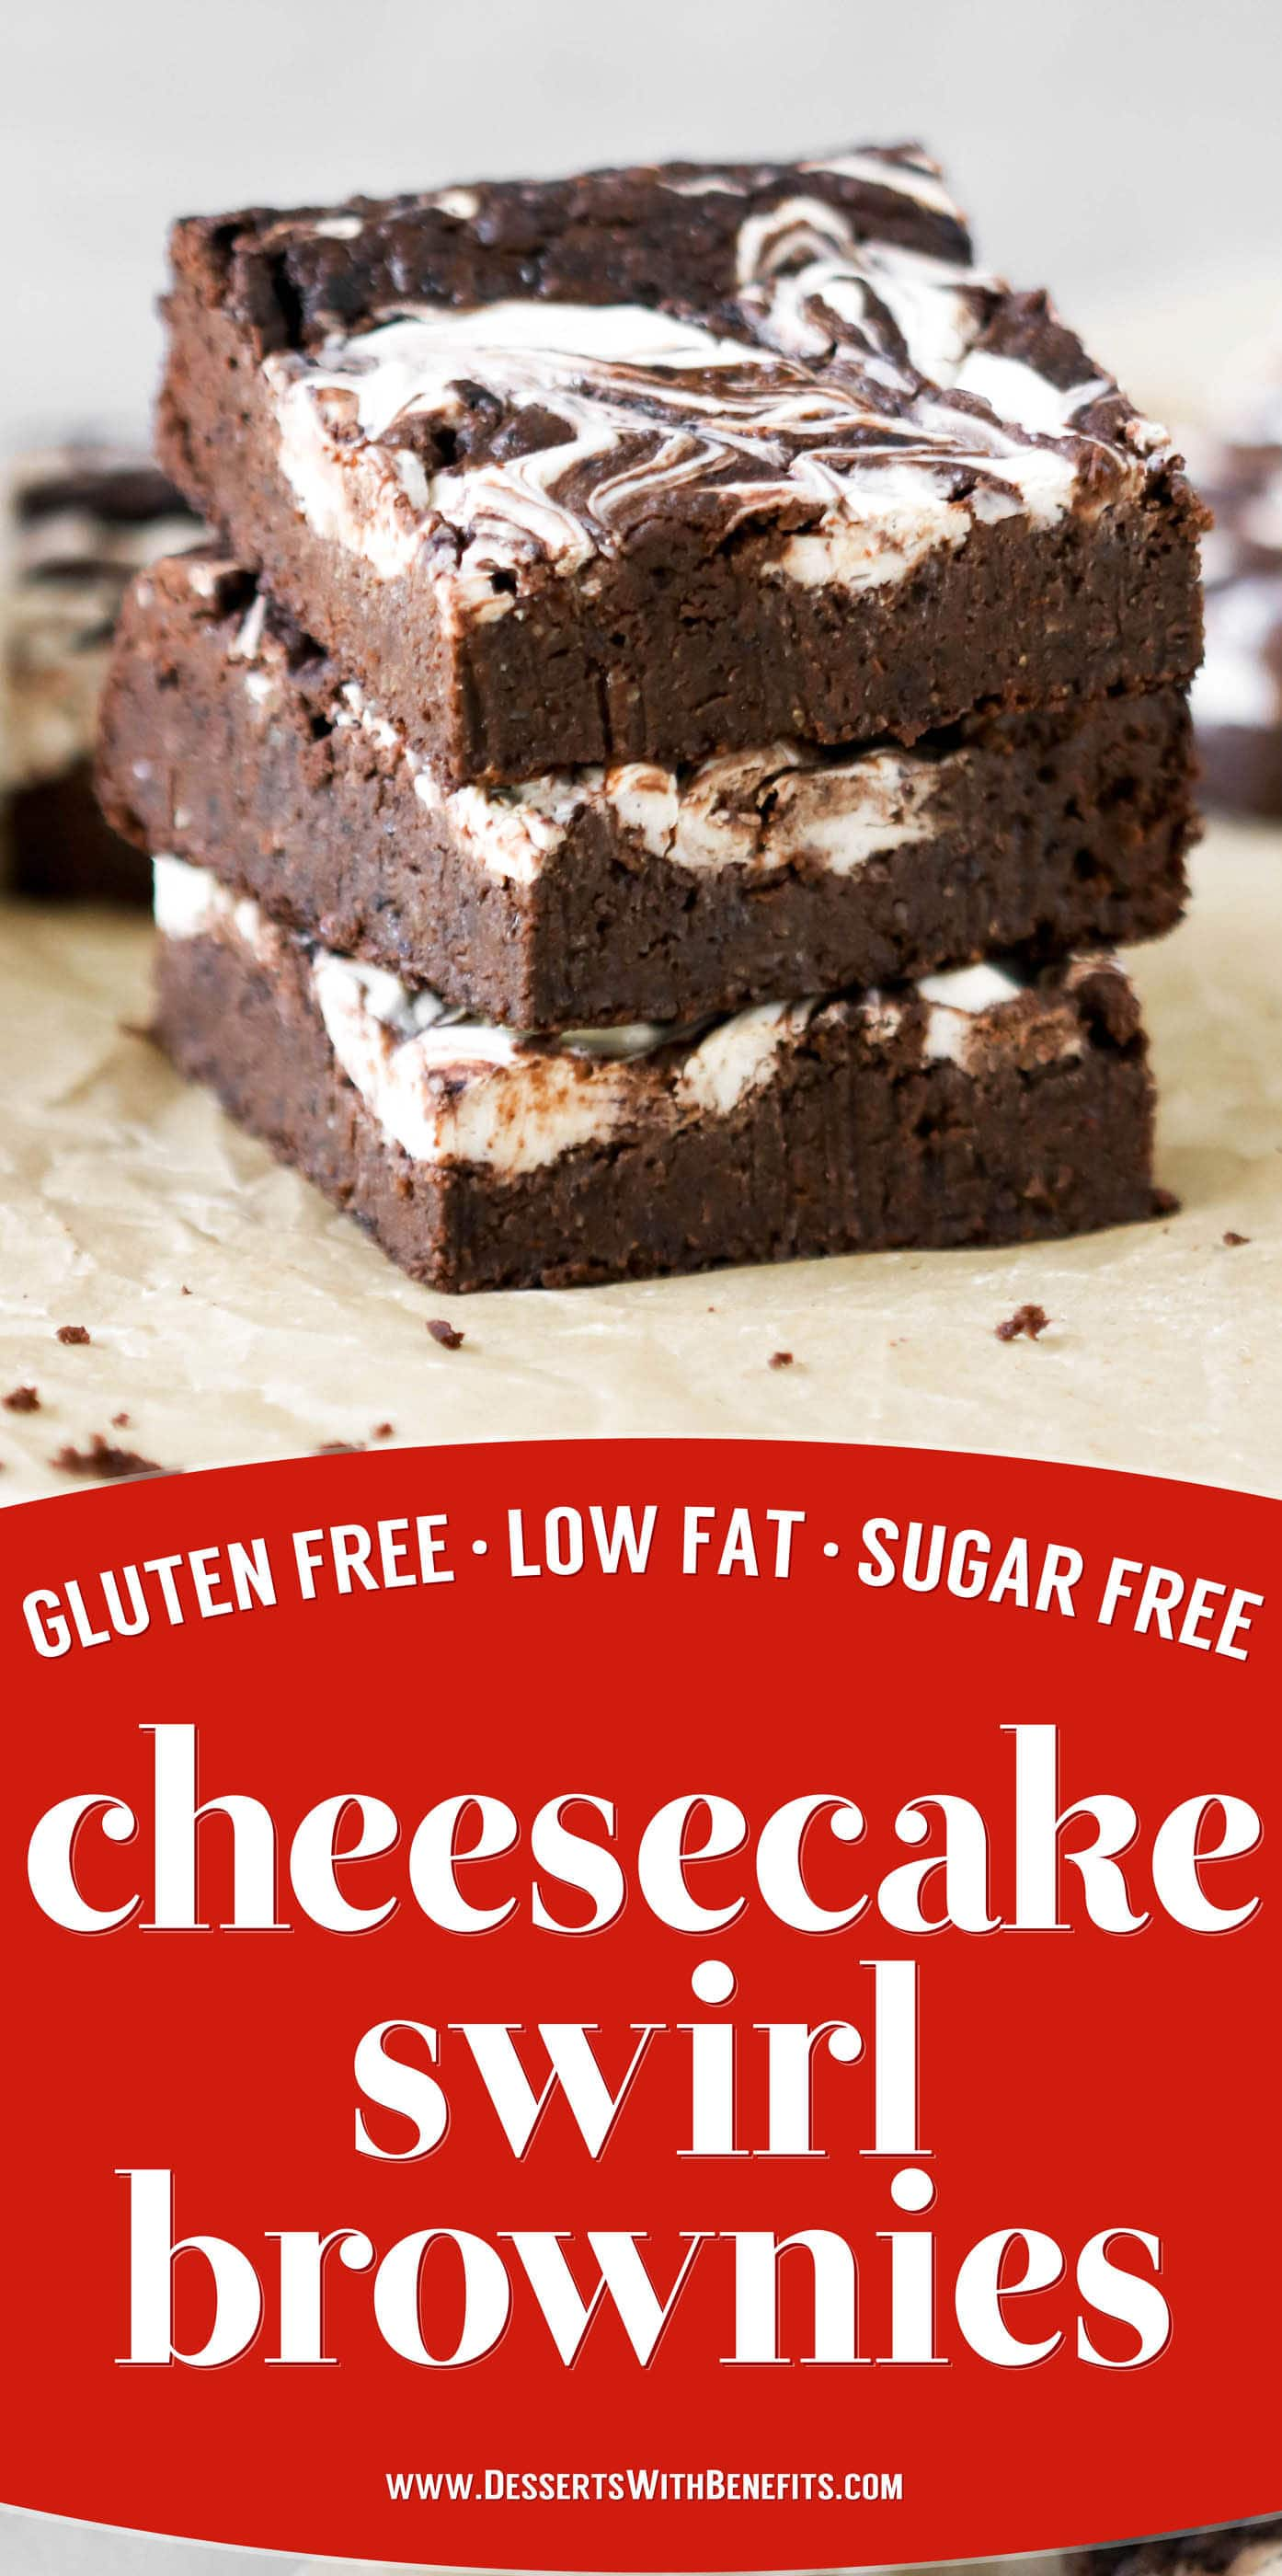 These Cheesecake Swirl Brownies are fudgy, dense, and chocolatey. And they're gluten free, sugar free, high fiber, and high protein too!